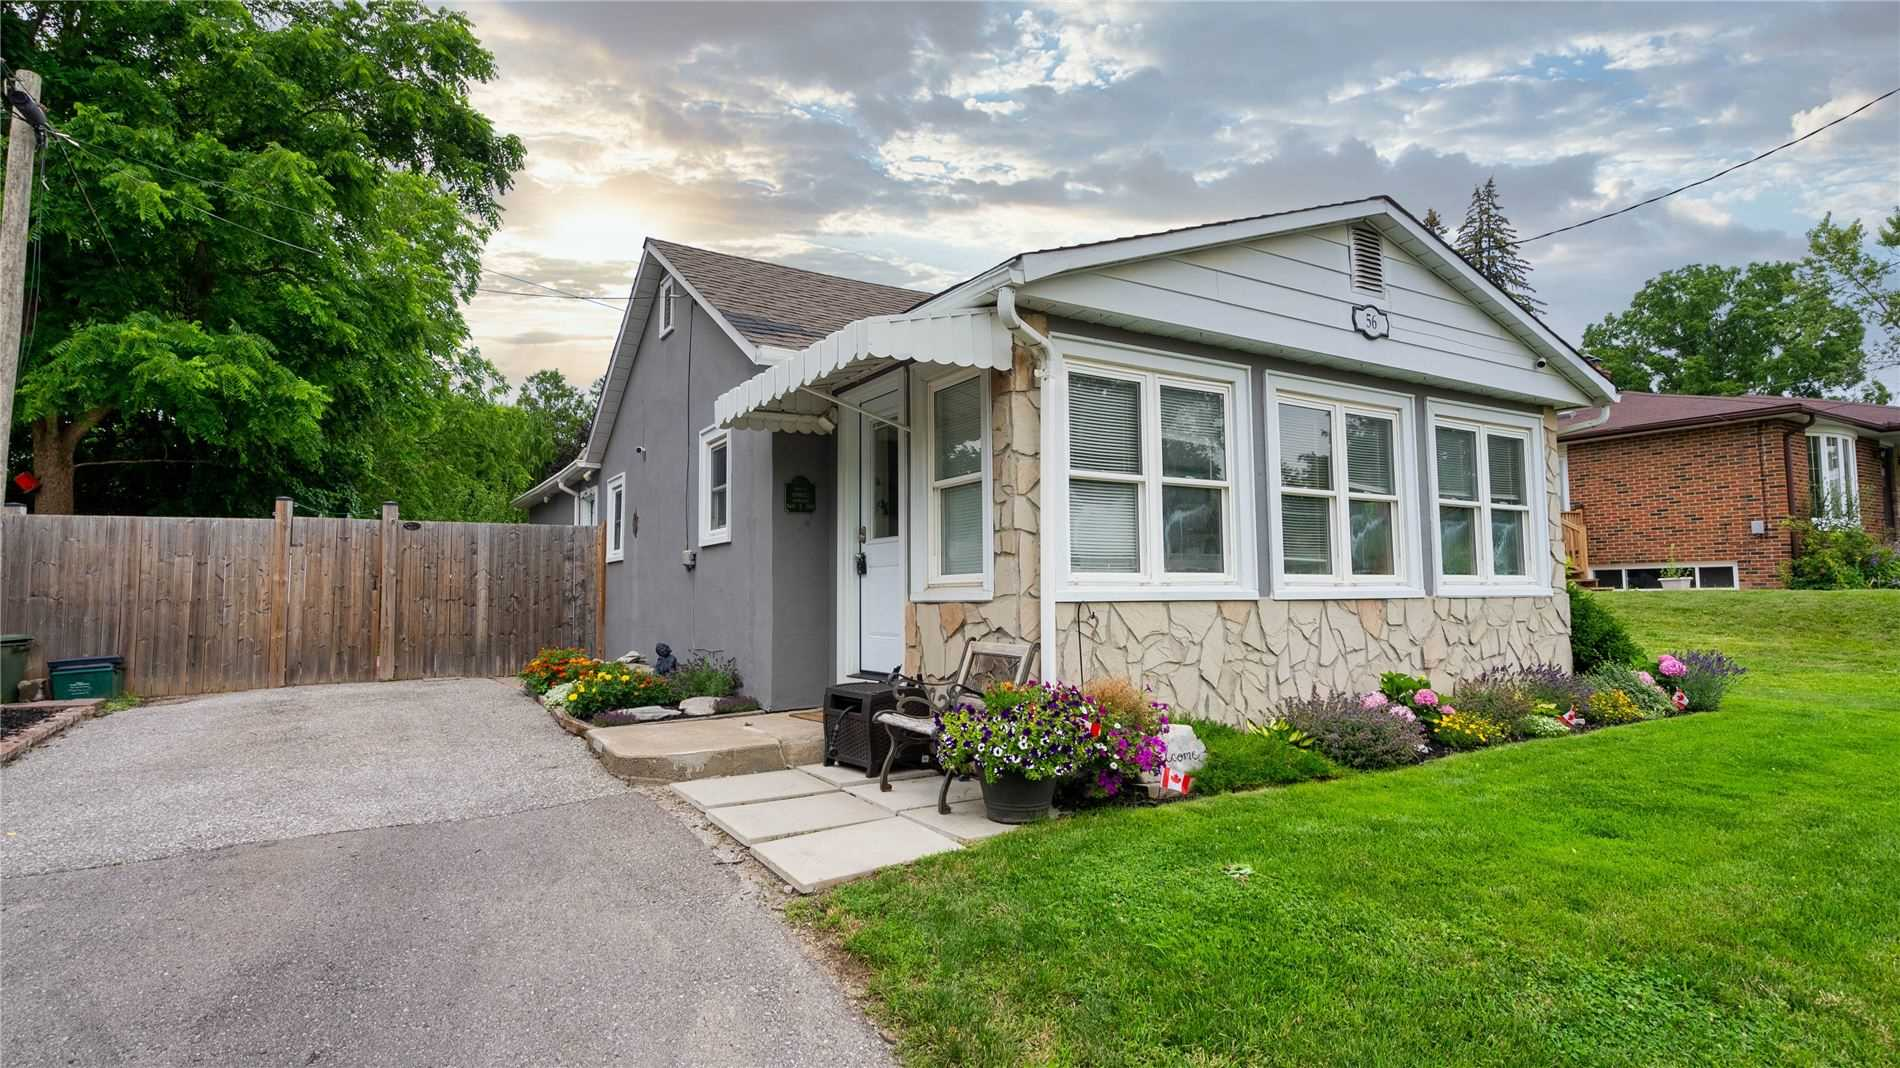 Detached house For Sale In Bradford West Gwillimbury - 56 Moore St, Bradford West Gwillimbury, Ontario, Canada L3Z 2B9 , 3 Bedrooms Bedrooms, ,2 BathroomsBathrooms,Detached,For Sale,Moore